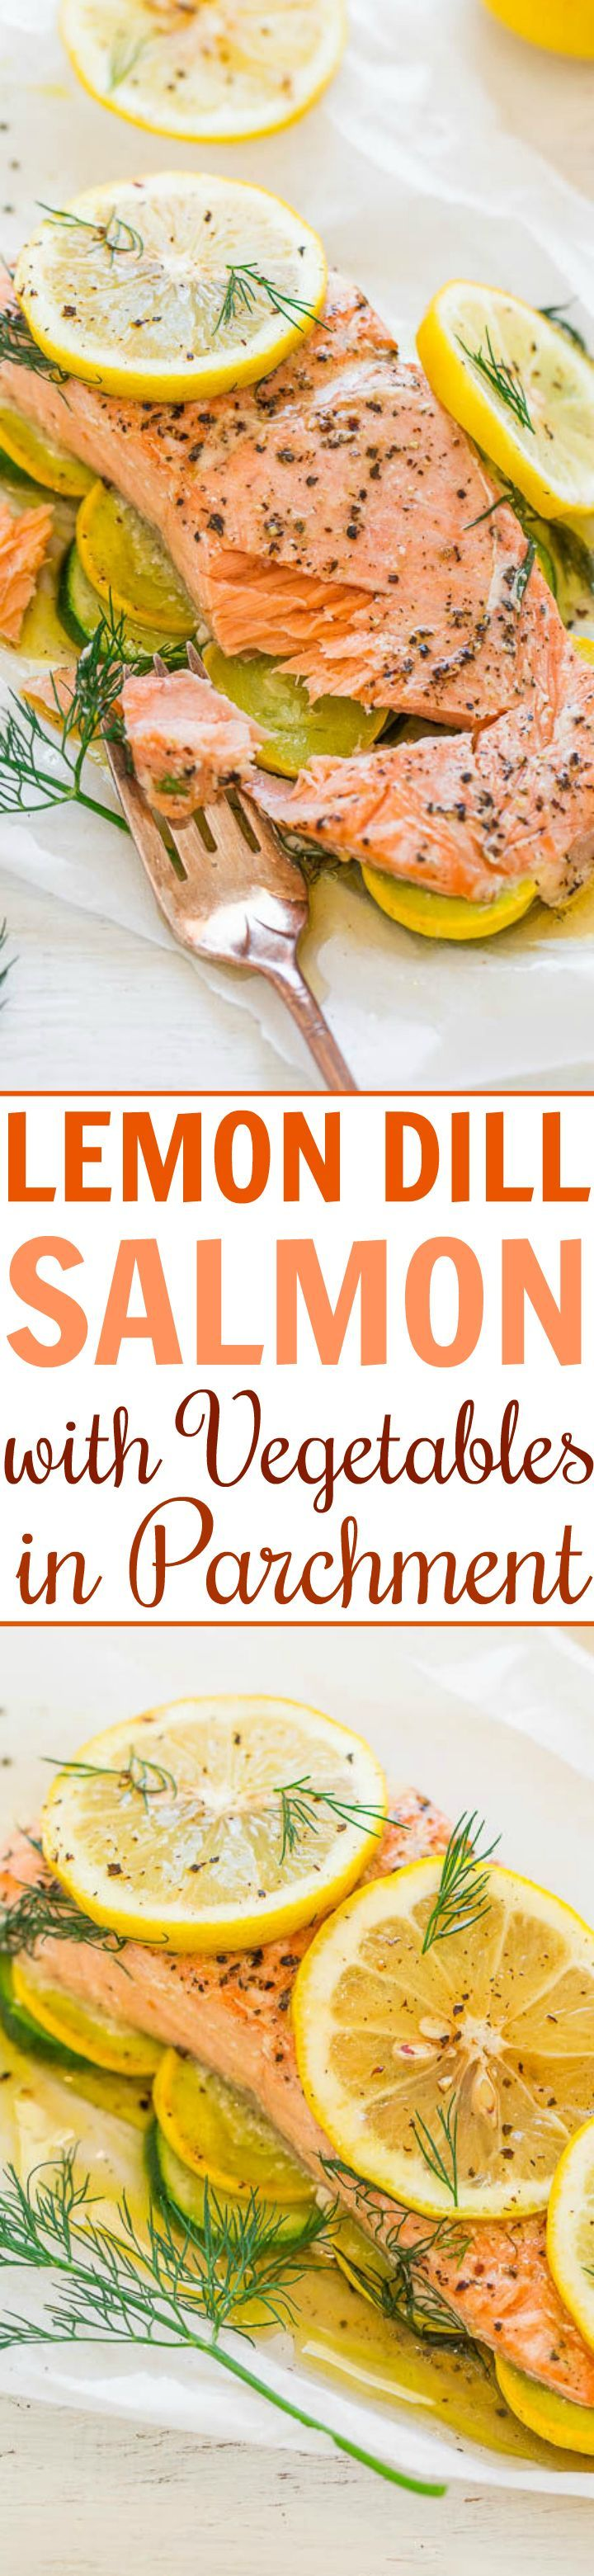 Lemon Dill Salmon with Vegetables in Parchment - Tender salmon with vegetables and it's so EASY, healthy, ready in 20 minutes, and loaded with bold LEMON and dill flavor!! Put it on your dinner rotation!!